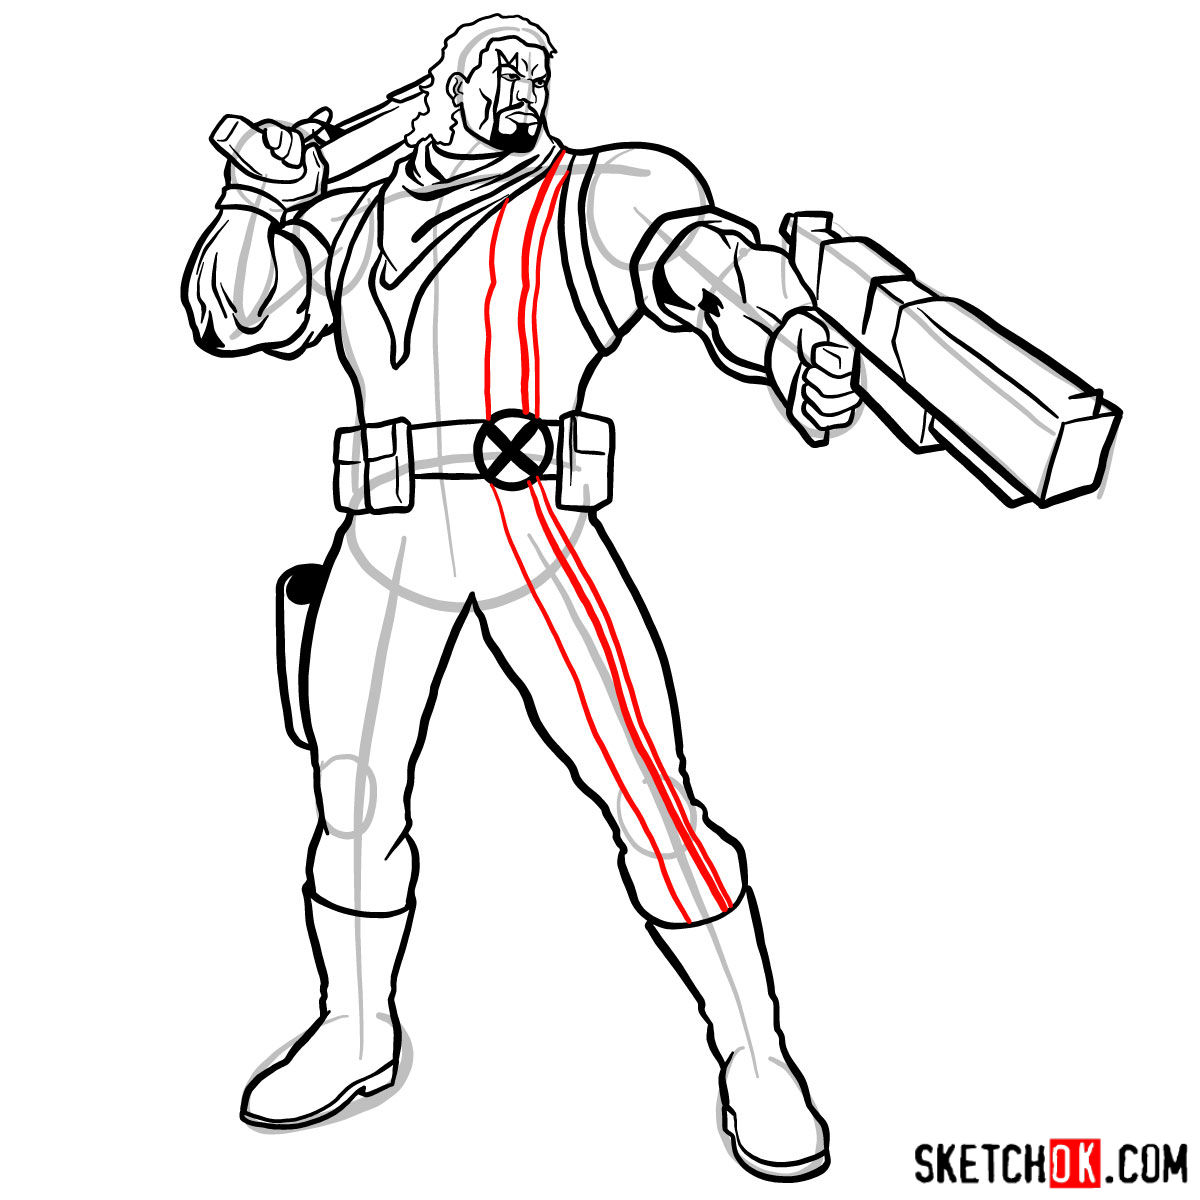 How to draw Lucas Bishop, a mutant from X-Men series - step 14